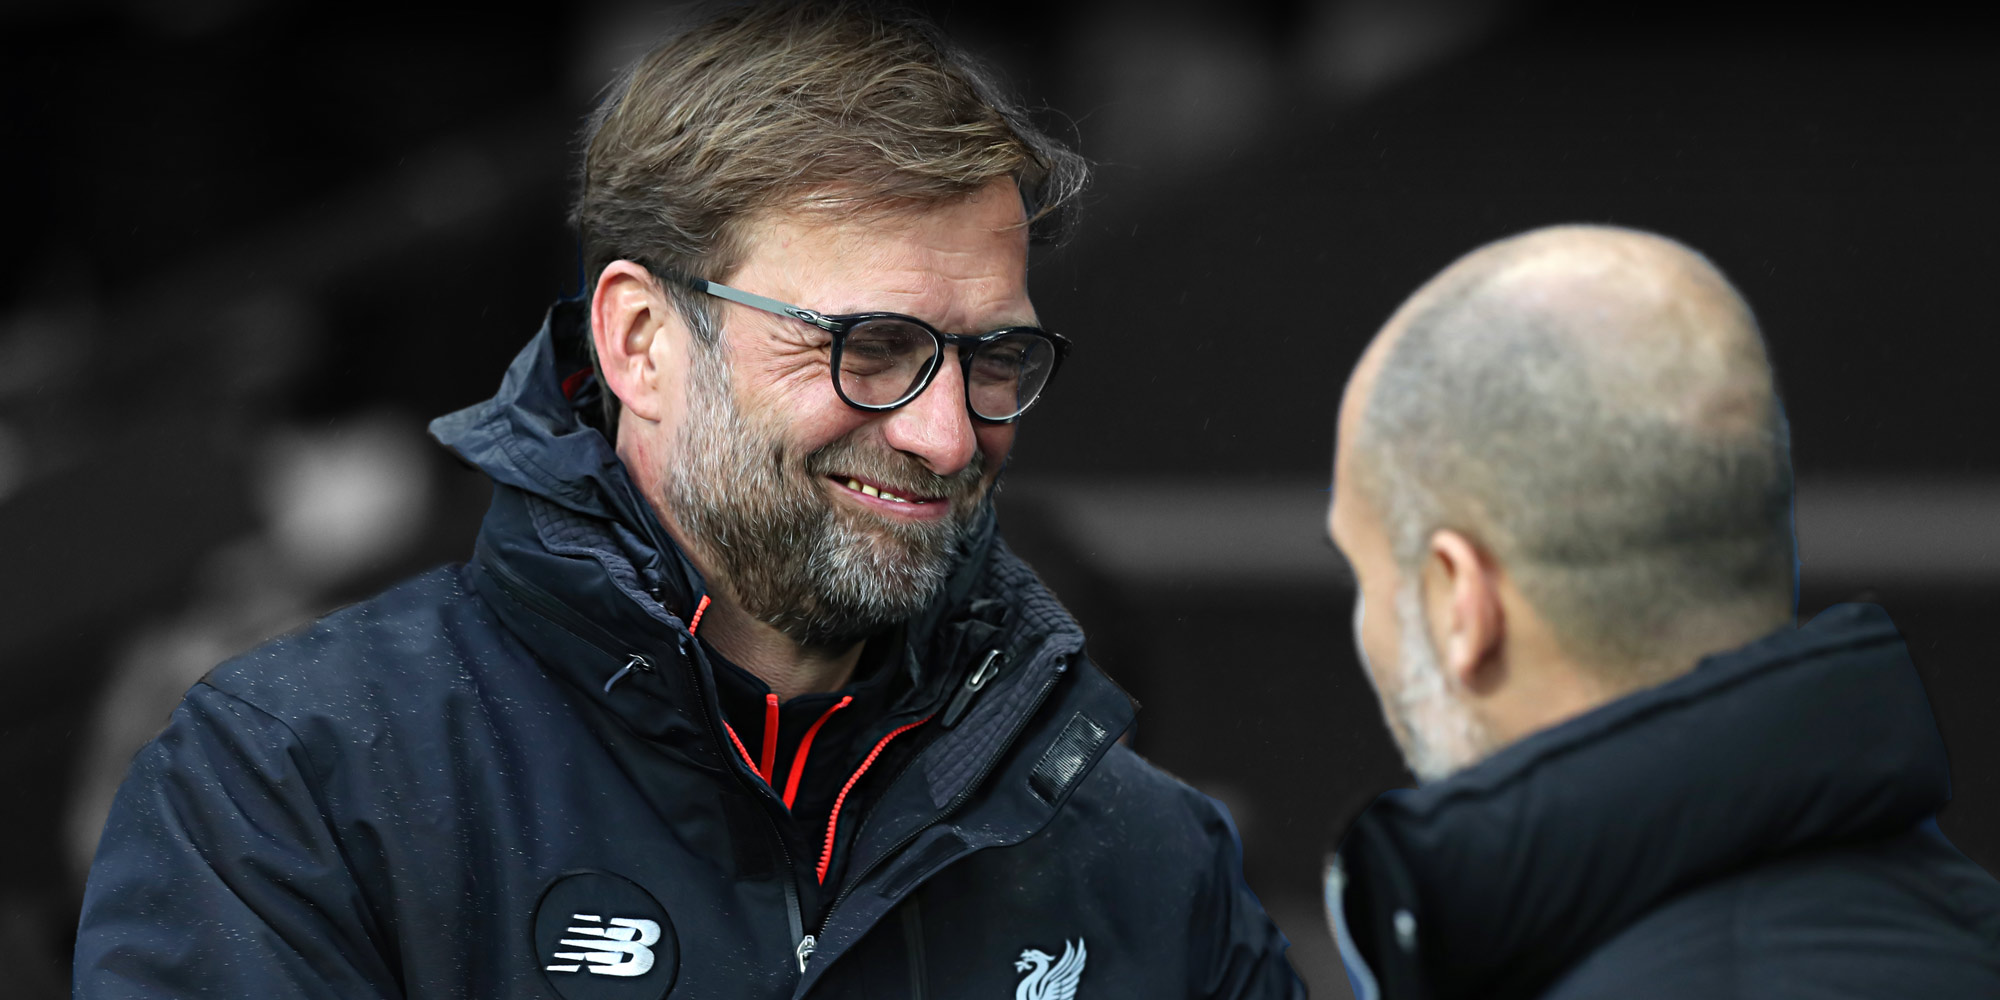 Jurgen Klopp v Pep Guardiola: The Rivalry and Best Matches